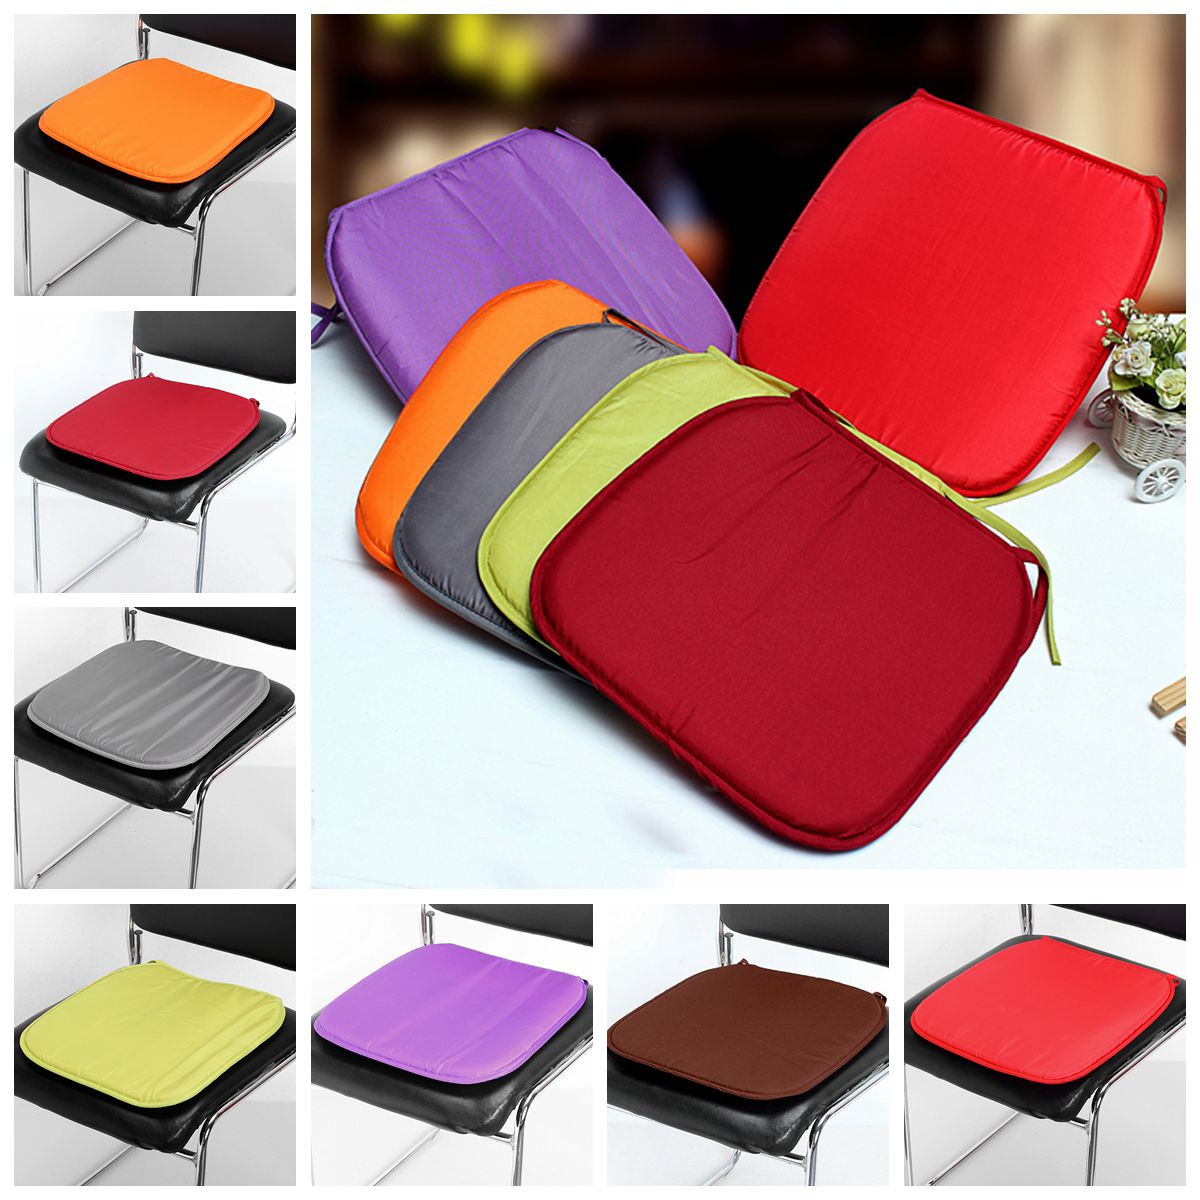 Multi-colors Soft Comfort Sit Mat Indoor Outdoor Chair Seat Pads Cushion Pads For Garden Patio Home Kitchen Office Park 37x37x2cm